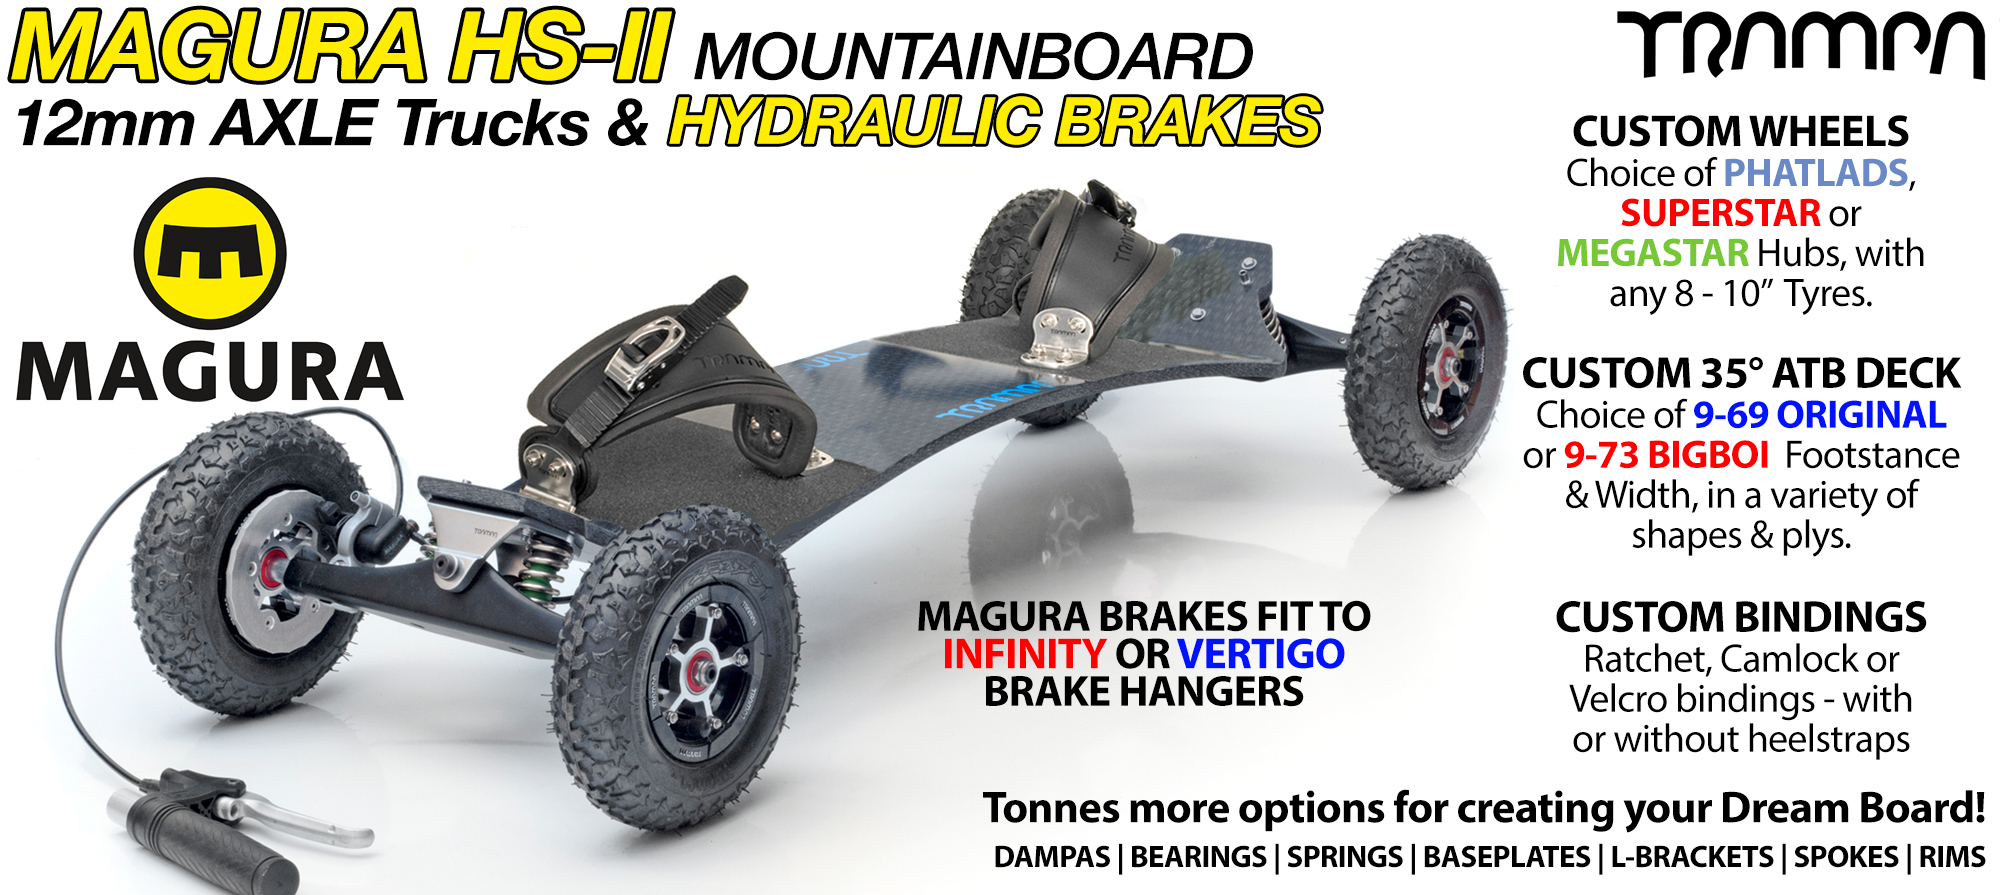 35° TRAMPA BrakeBoard Using MAGURA Brakes on VERTIGO Trucks SUPERSTAR wheels